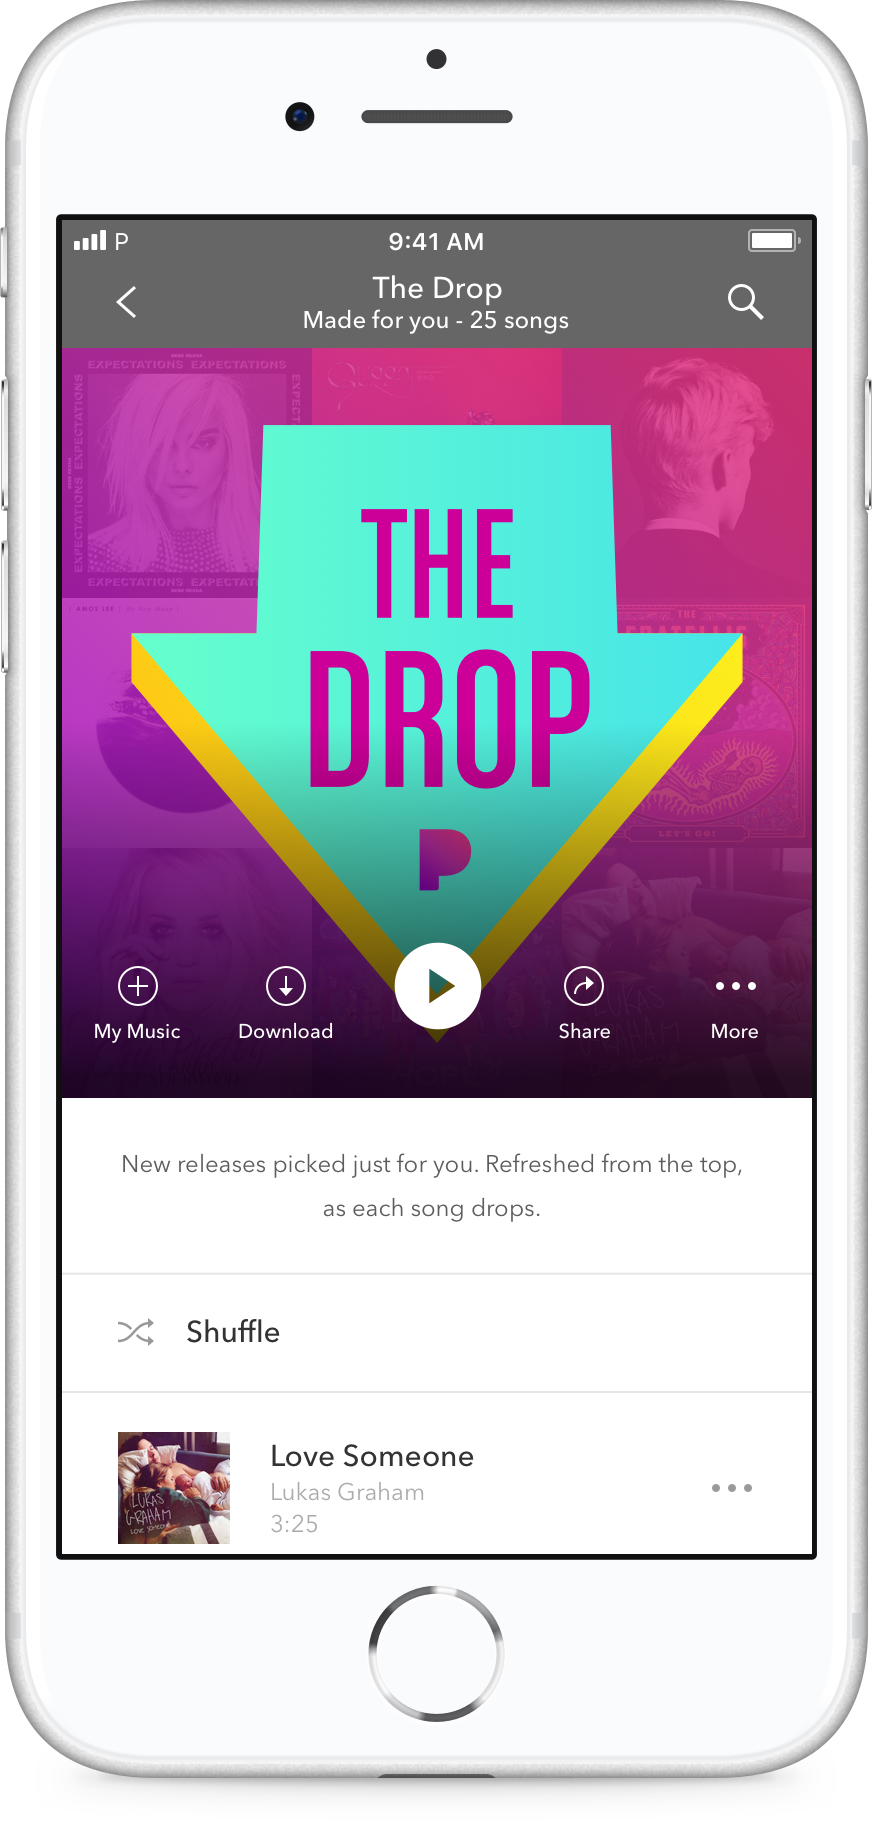 A screenshot of Pandora on an iPhone shows the interface for The Drop playlist.